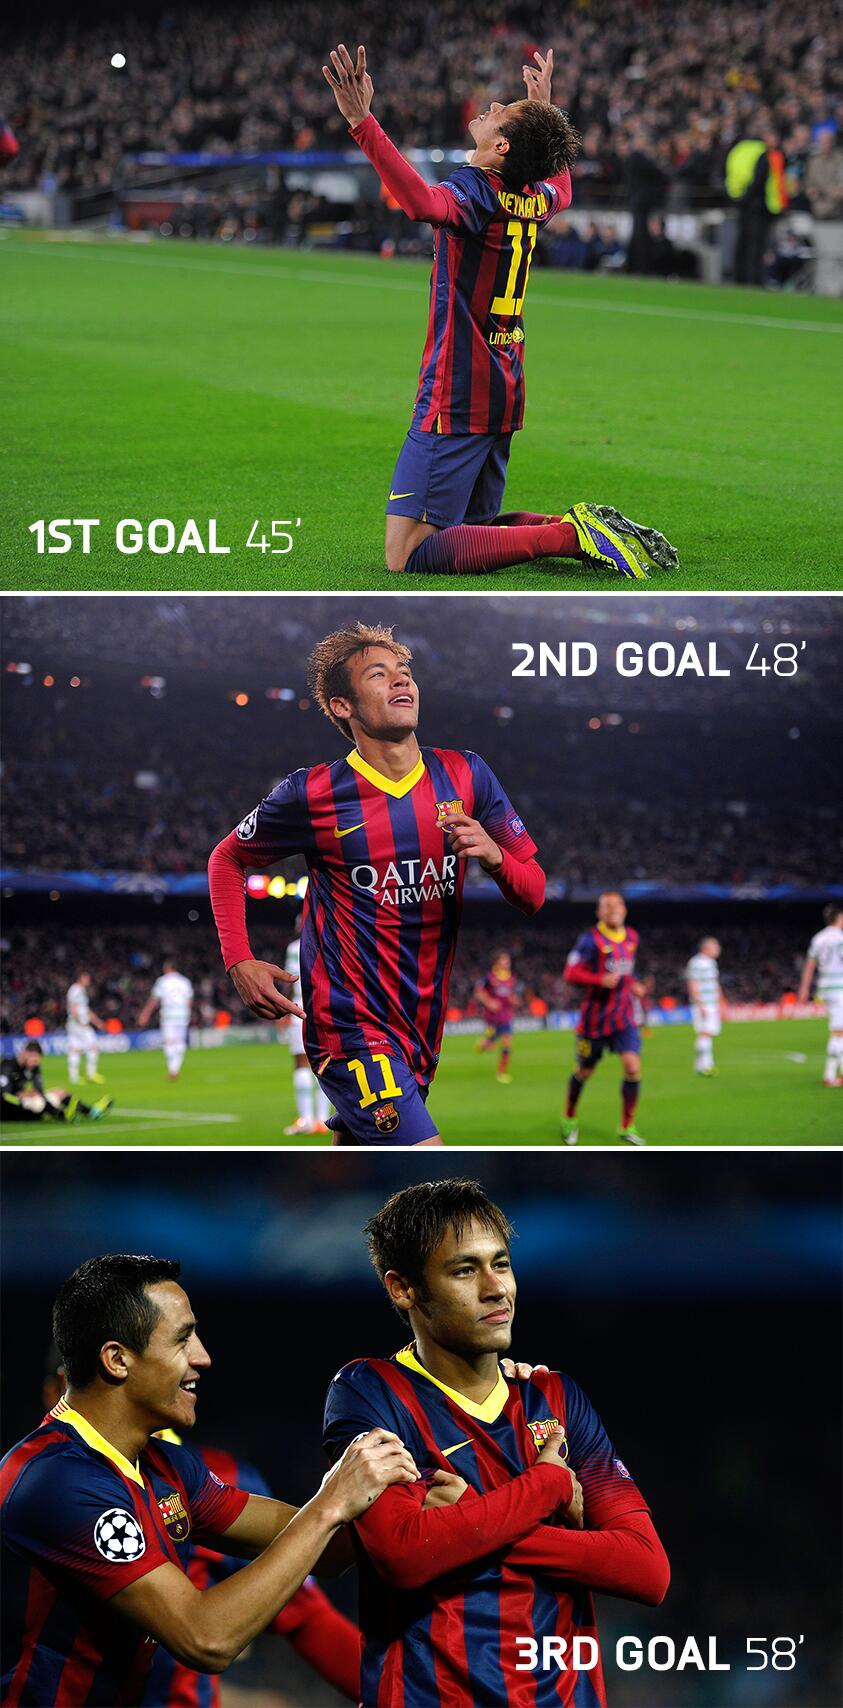 Congrats to hat-trick hero @neymarjr on scoring his first goals in #Europe. http://t.co/zMUFHUd999